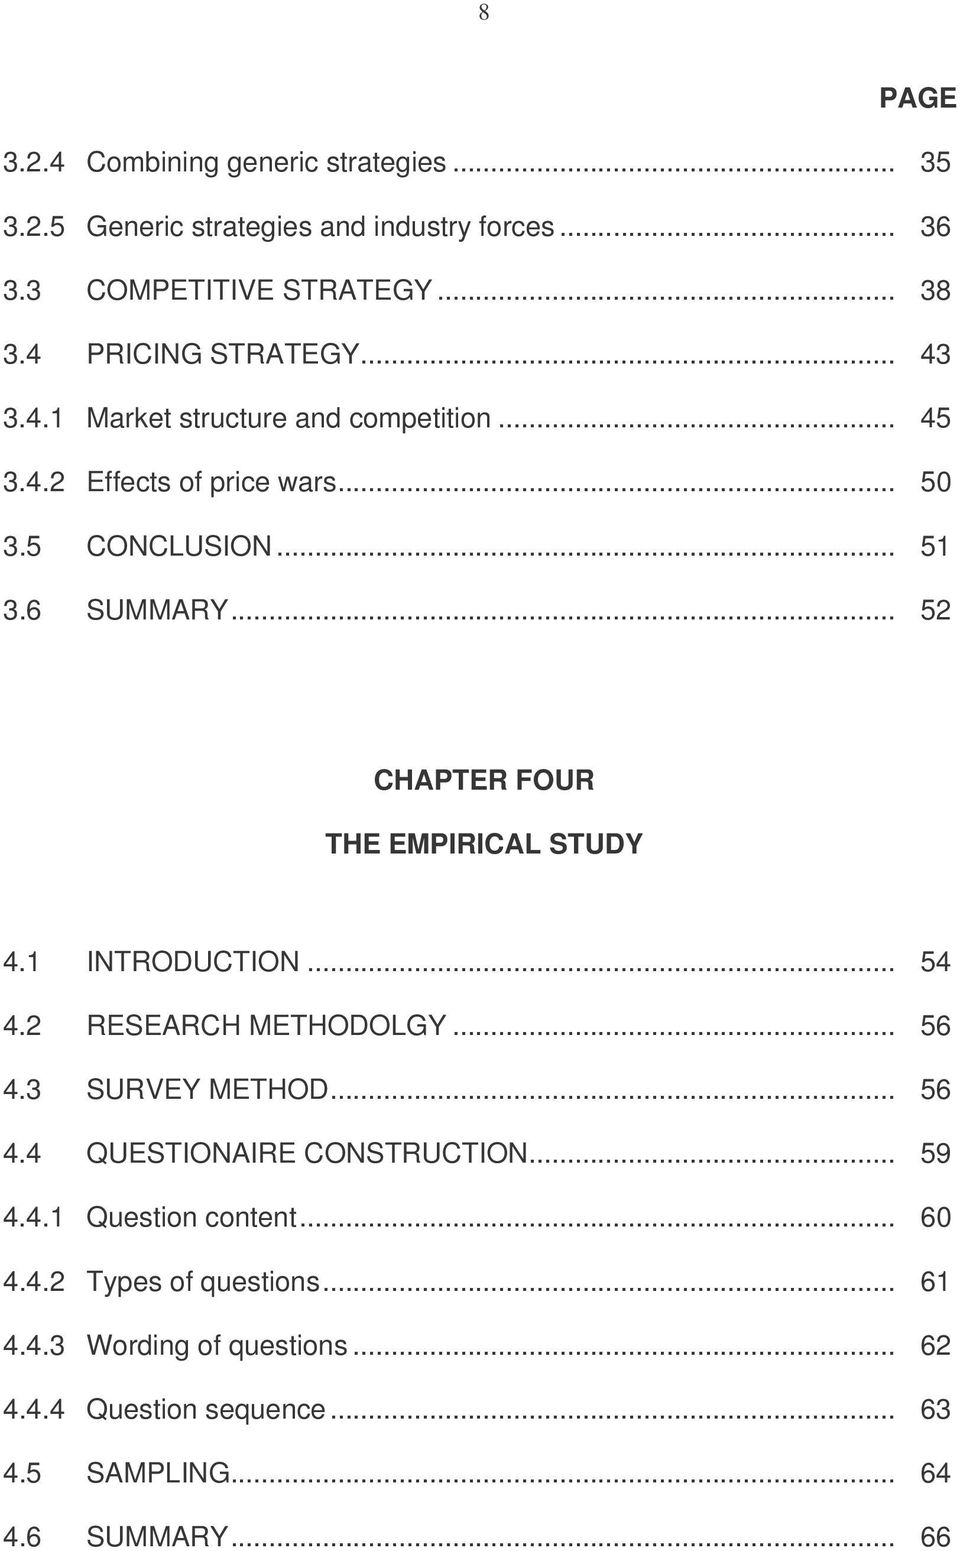 .. 52 CHAPTER FOUR THE EMPIRICAL STUDY 4.1 INTRODUCTION... 54 4.2 RESEARCH METHODOLGY... 56 4.3 SURVEY METHOD... 56 4.4 QUESTIONAIRE CONSTRUCTION.